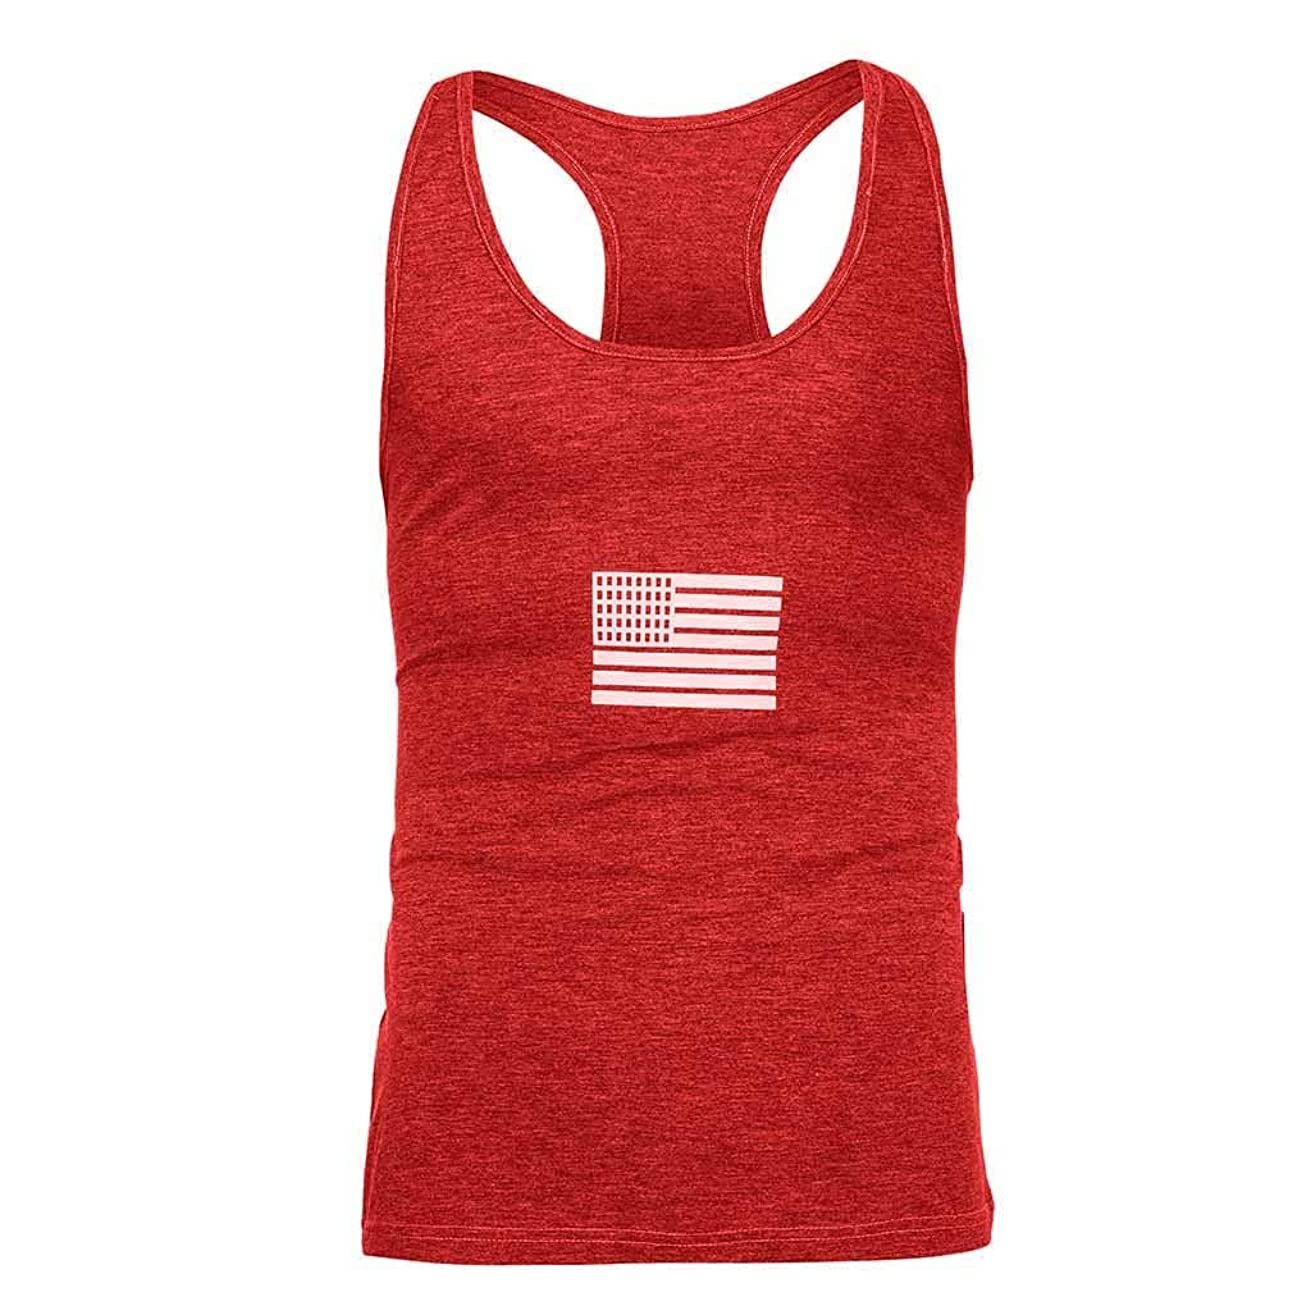 Mens Vests Summer Flag Printed Sports Vest Tank Tops Striped Large Open-Forked Athletics Quick Dry Top